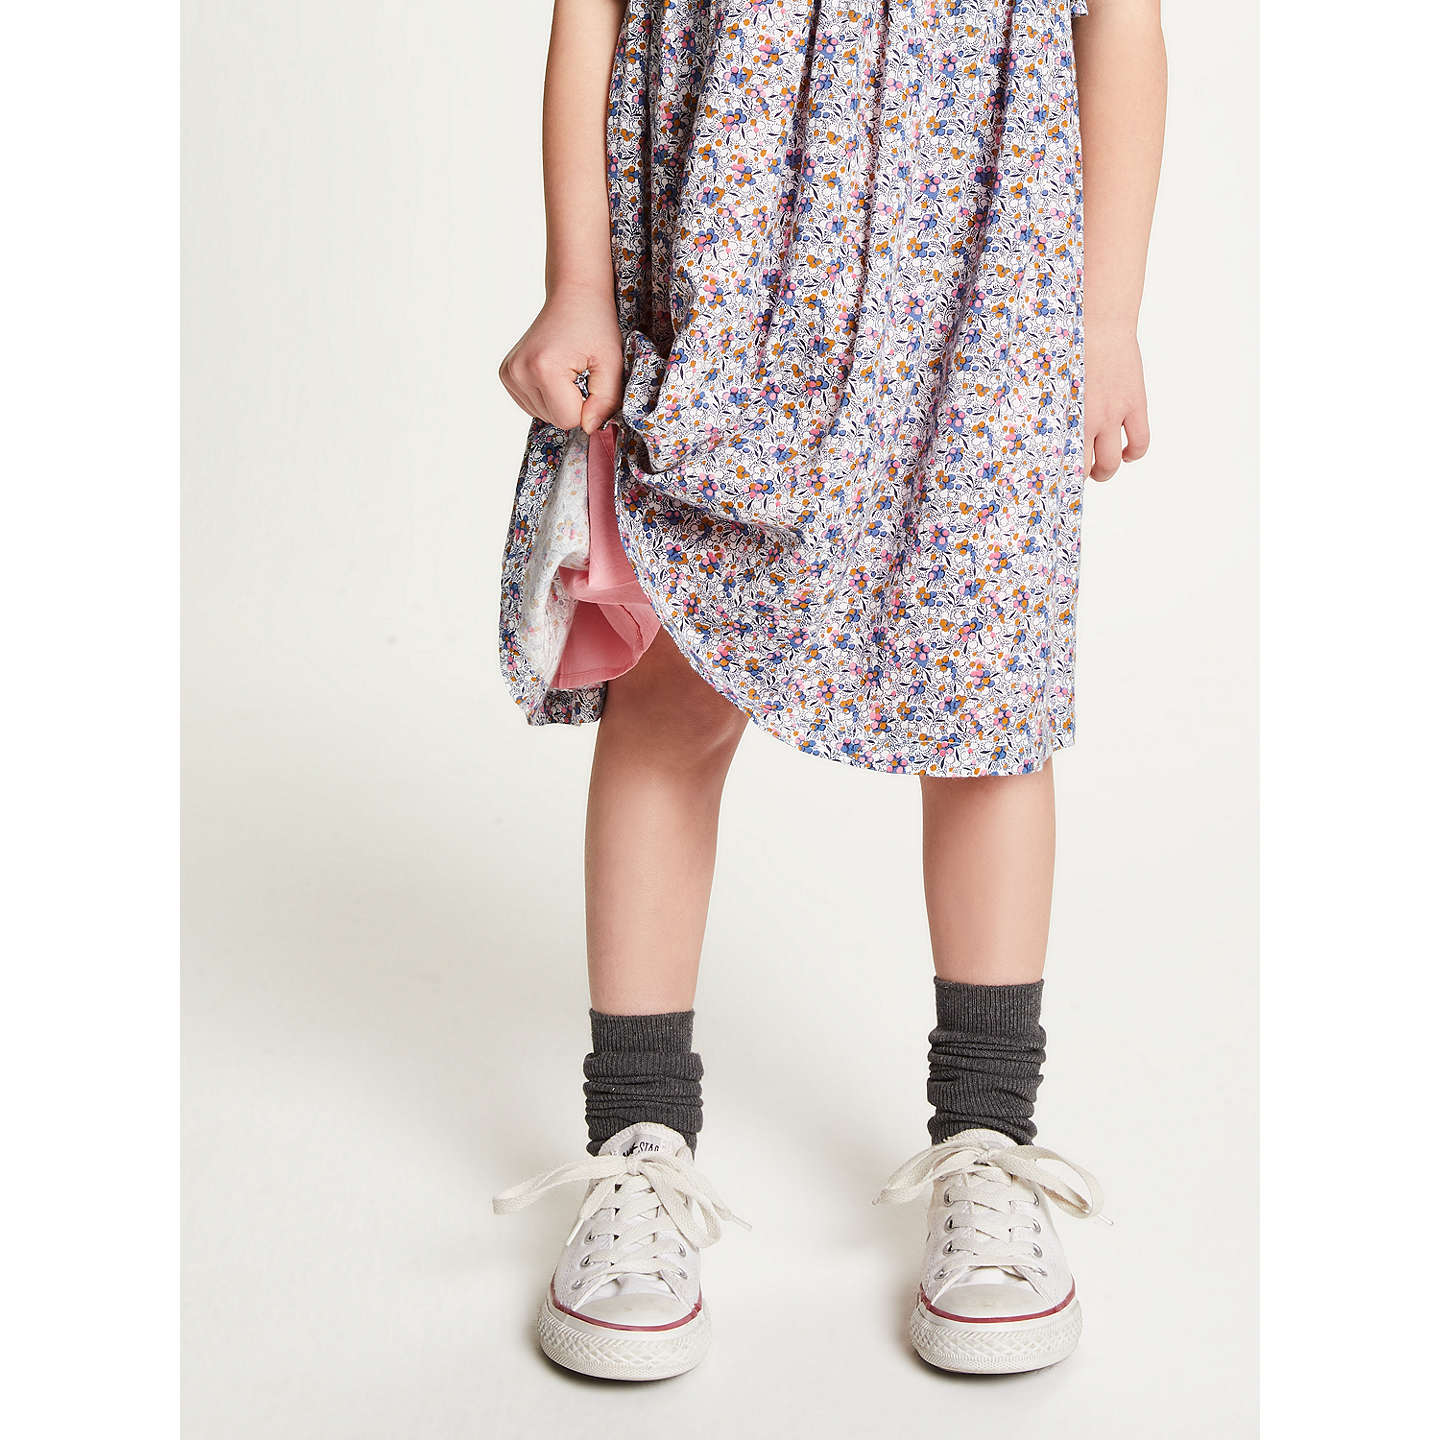 BuyJohn Lewis Girls' Floral Frill Dress, Blue/Multi, 2 years Online at johnlewis.com